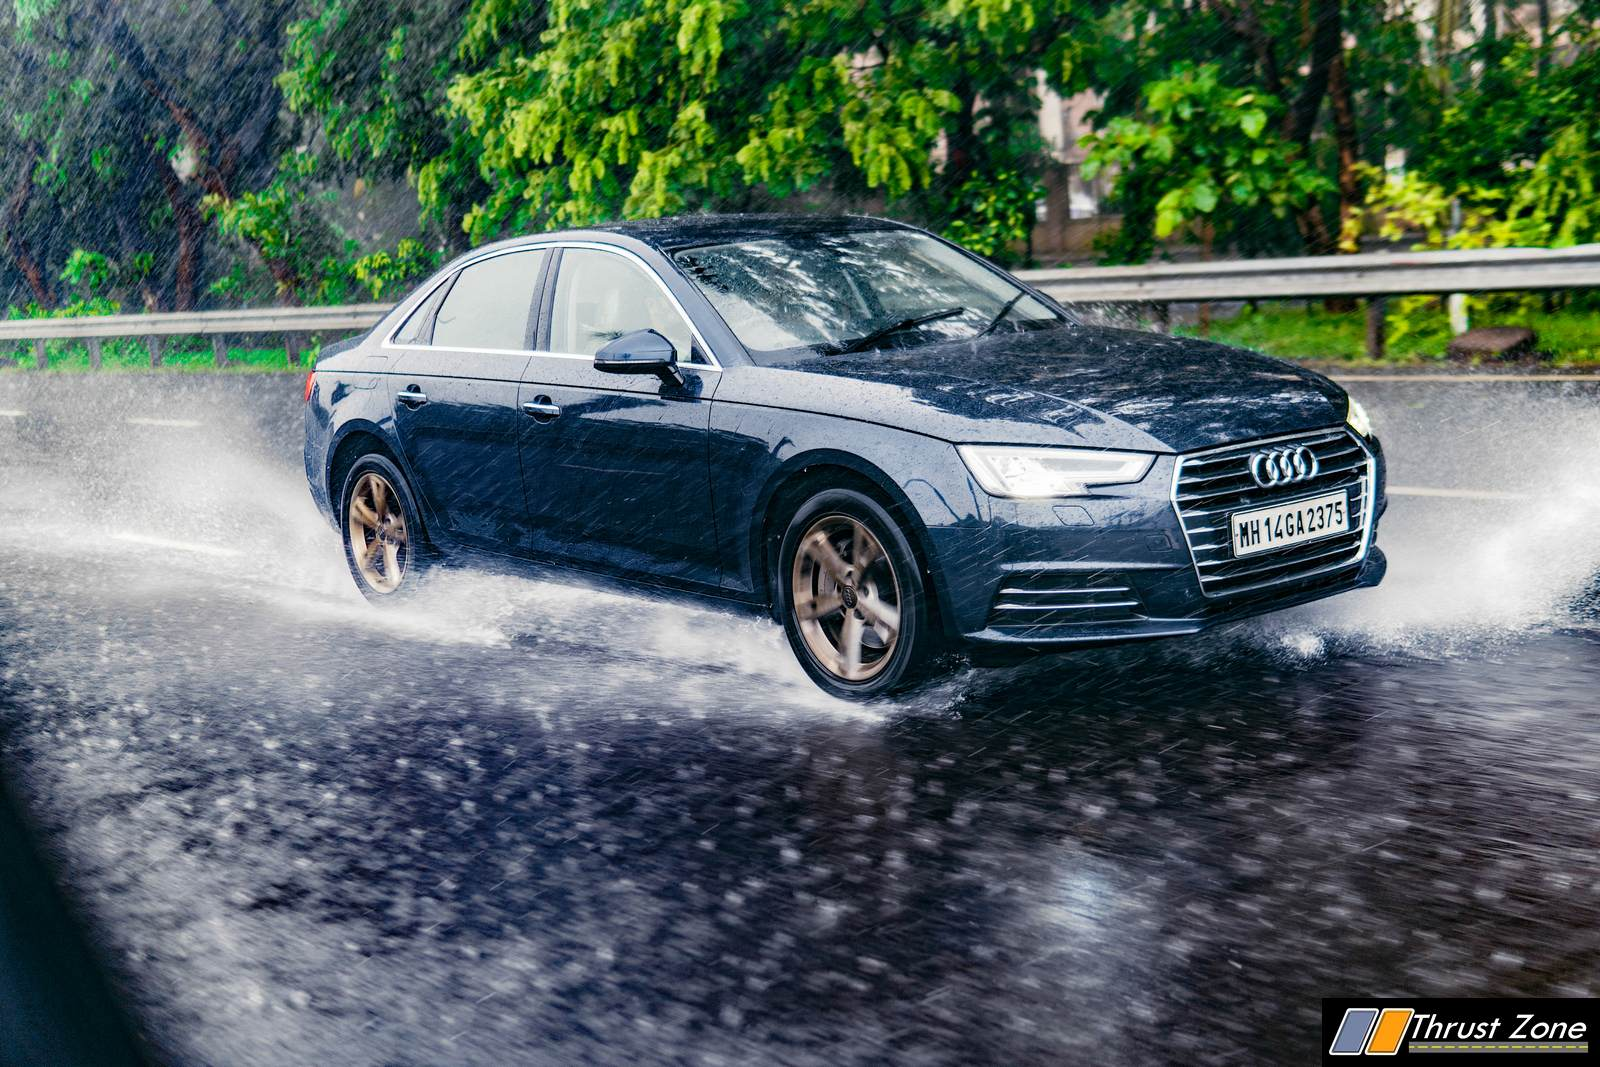 https://www.thrustzone.com/wp-content/uploads/2019/08/2019-Audi-A4-Diesel-India-Review-1.jpg